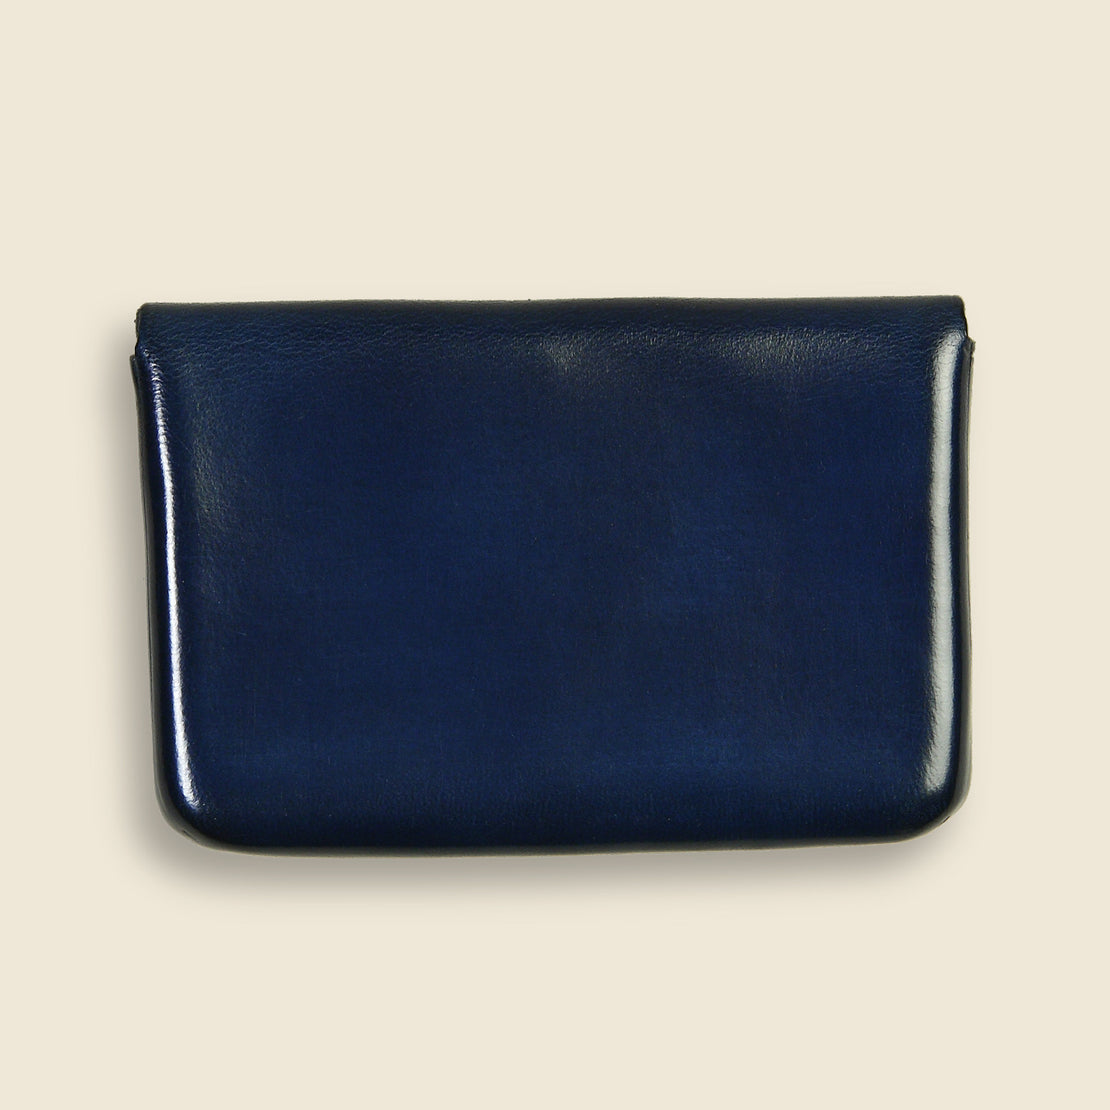 Business Card Holder - Navy - Il Bussetto - STAG Provisions - Accessories - Wallets